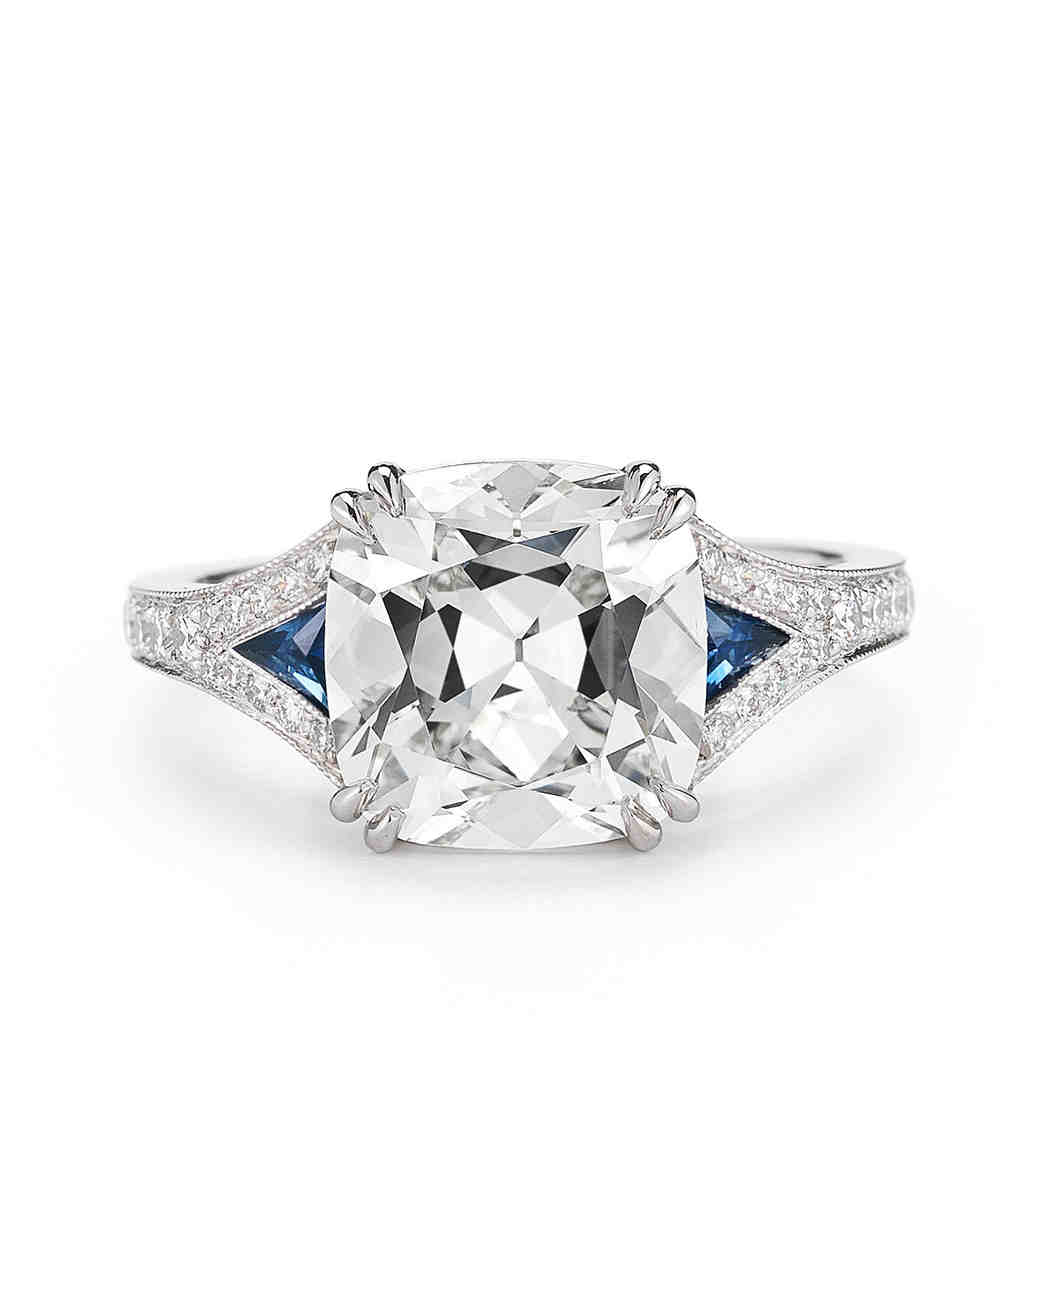 McTeigue & McClelland Antique Cushion-Cut Engagement Ring with Blue Sapphires